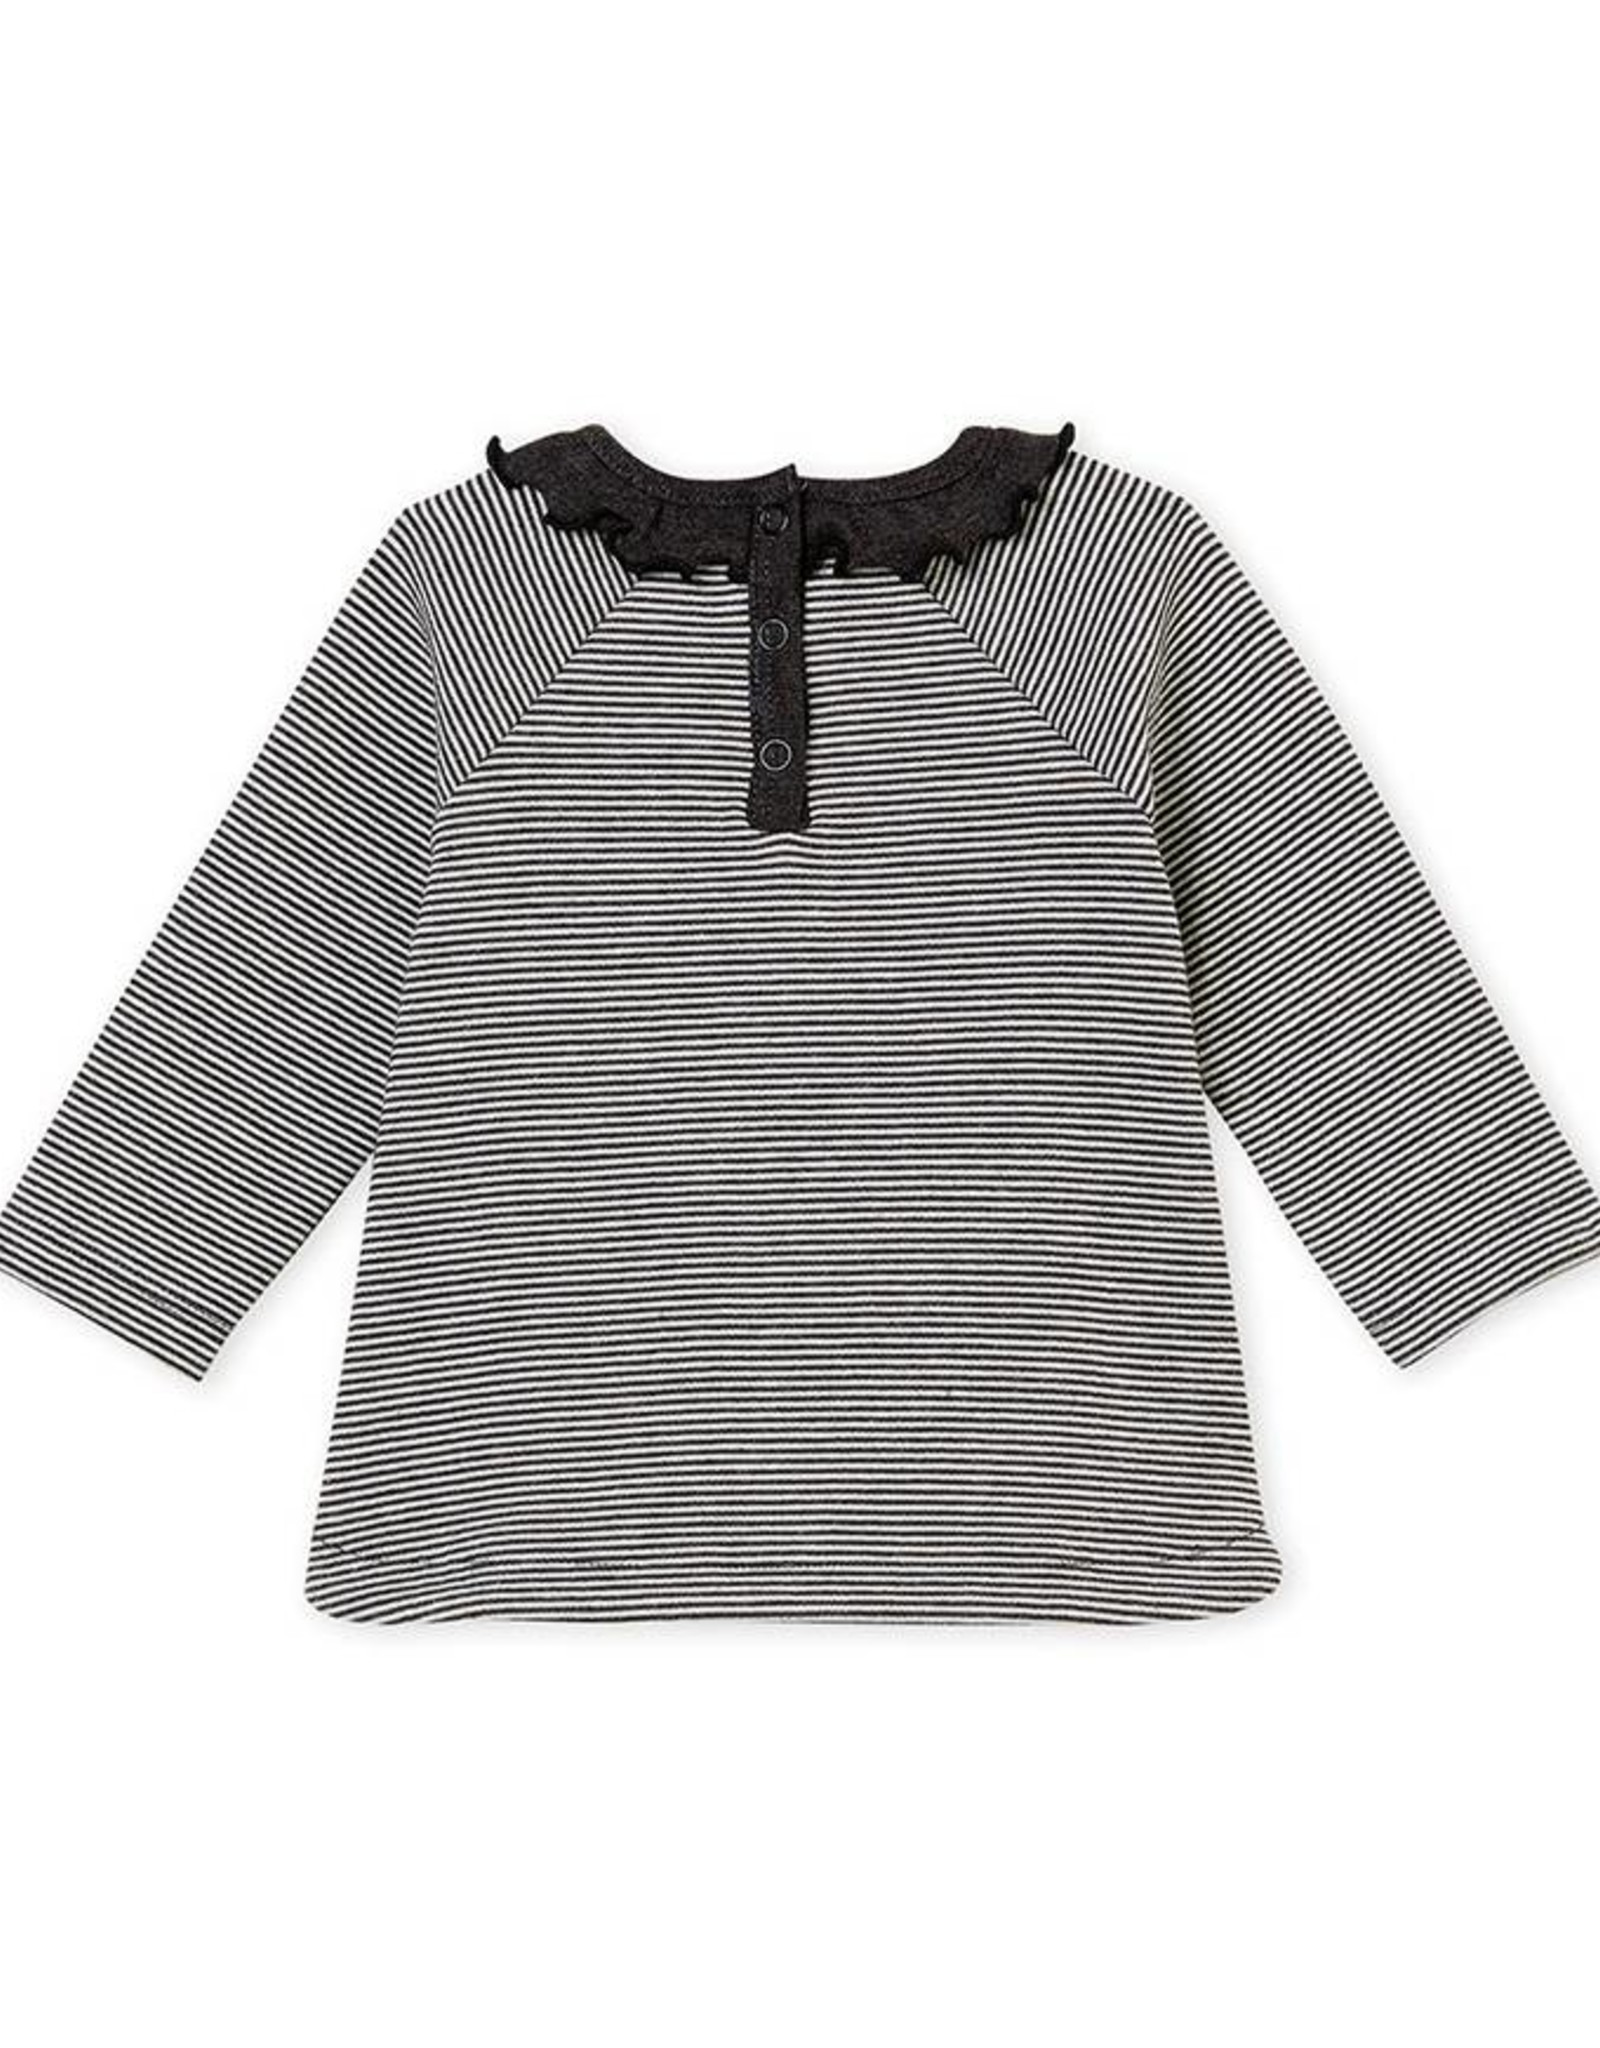 Petit Bateau Girl's t-shirt, with stripes